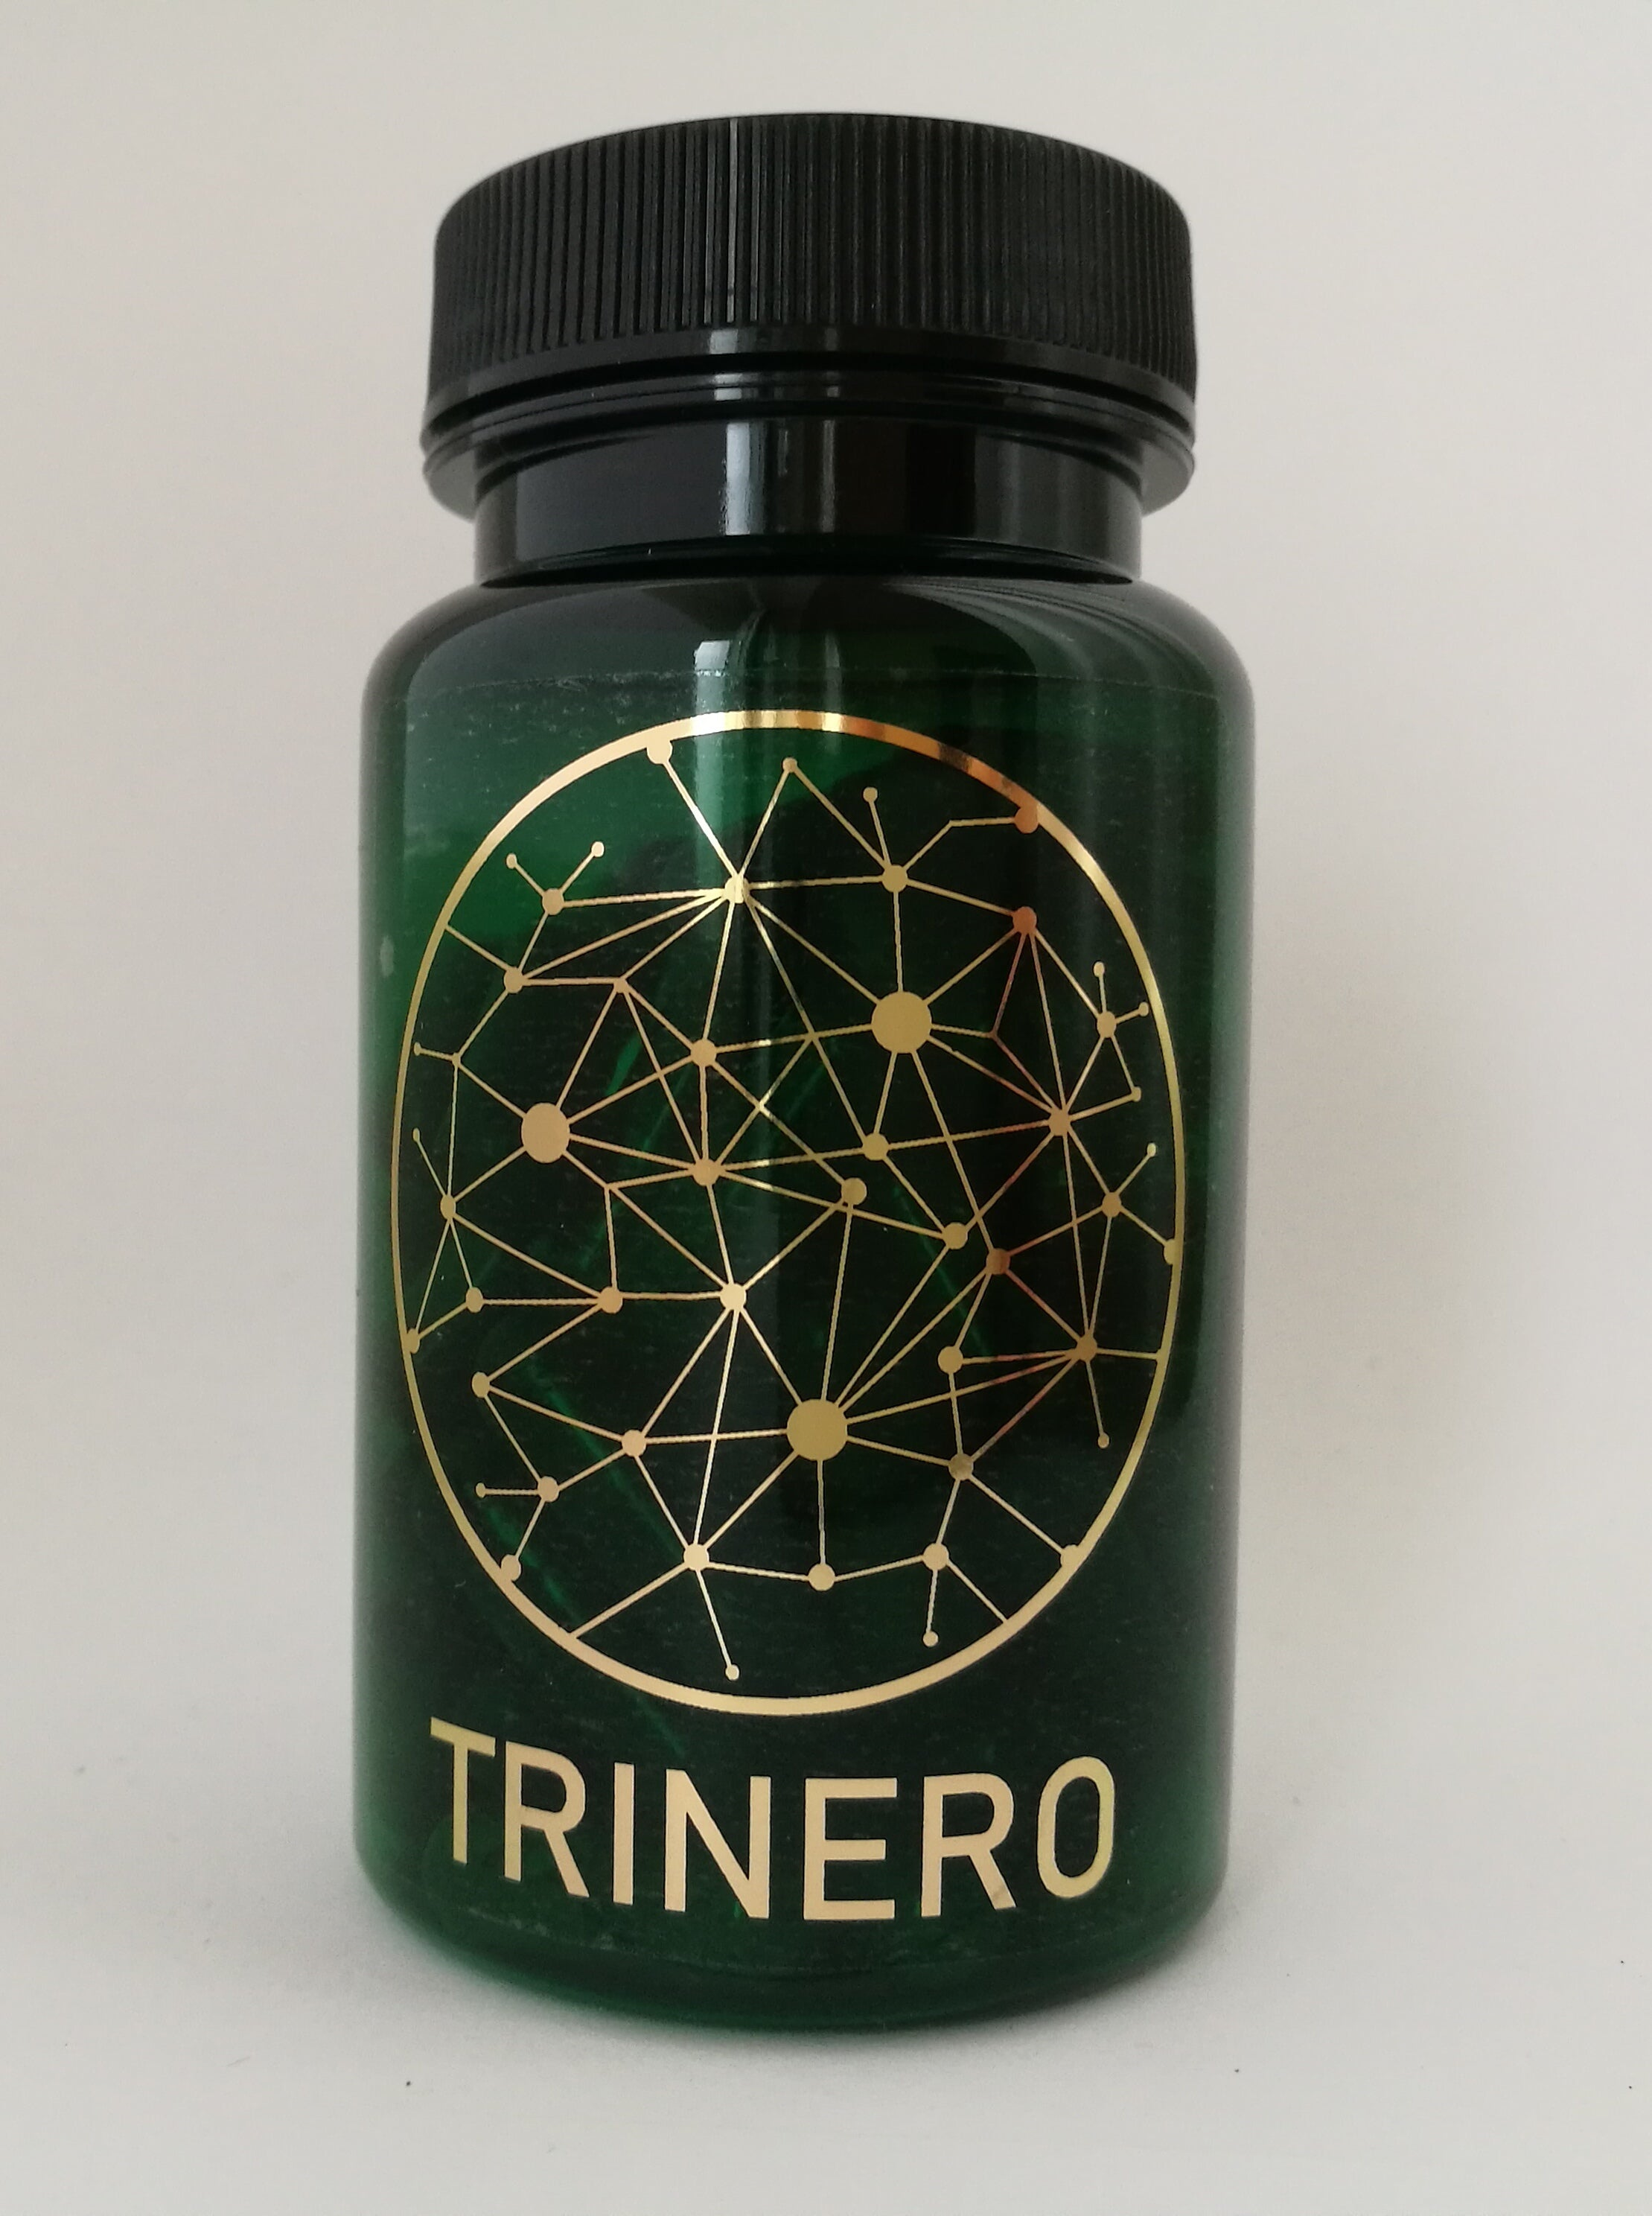 TRINERO - SPECIAL OFFER UNTIL 30.06.20